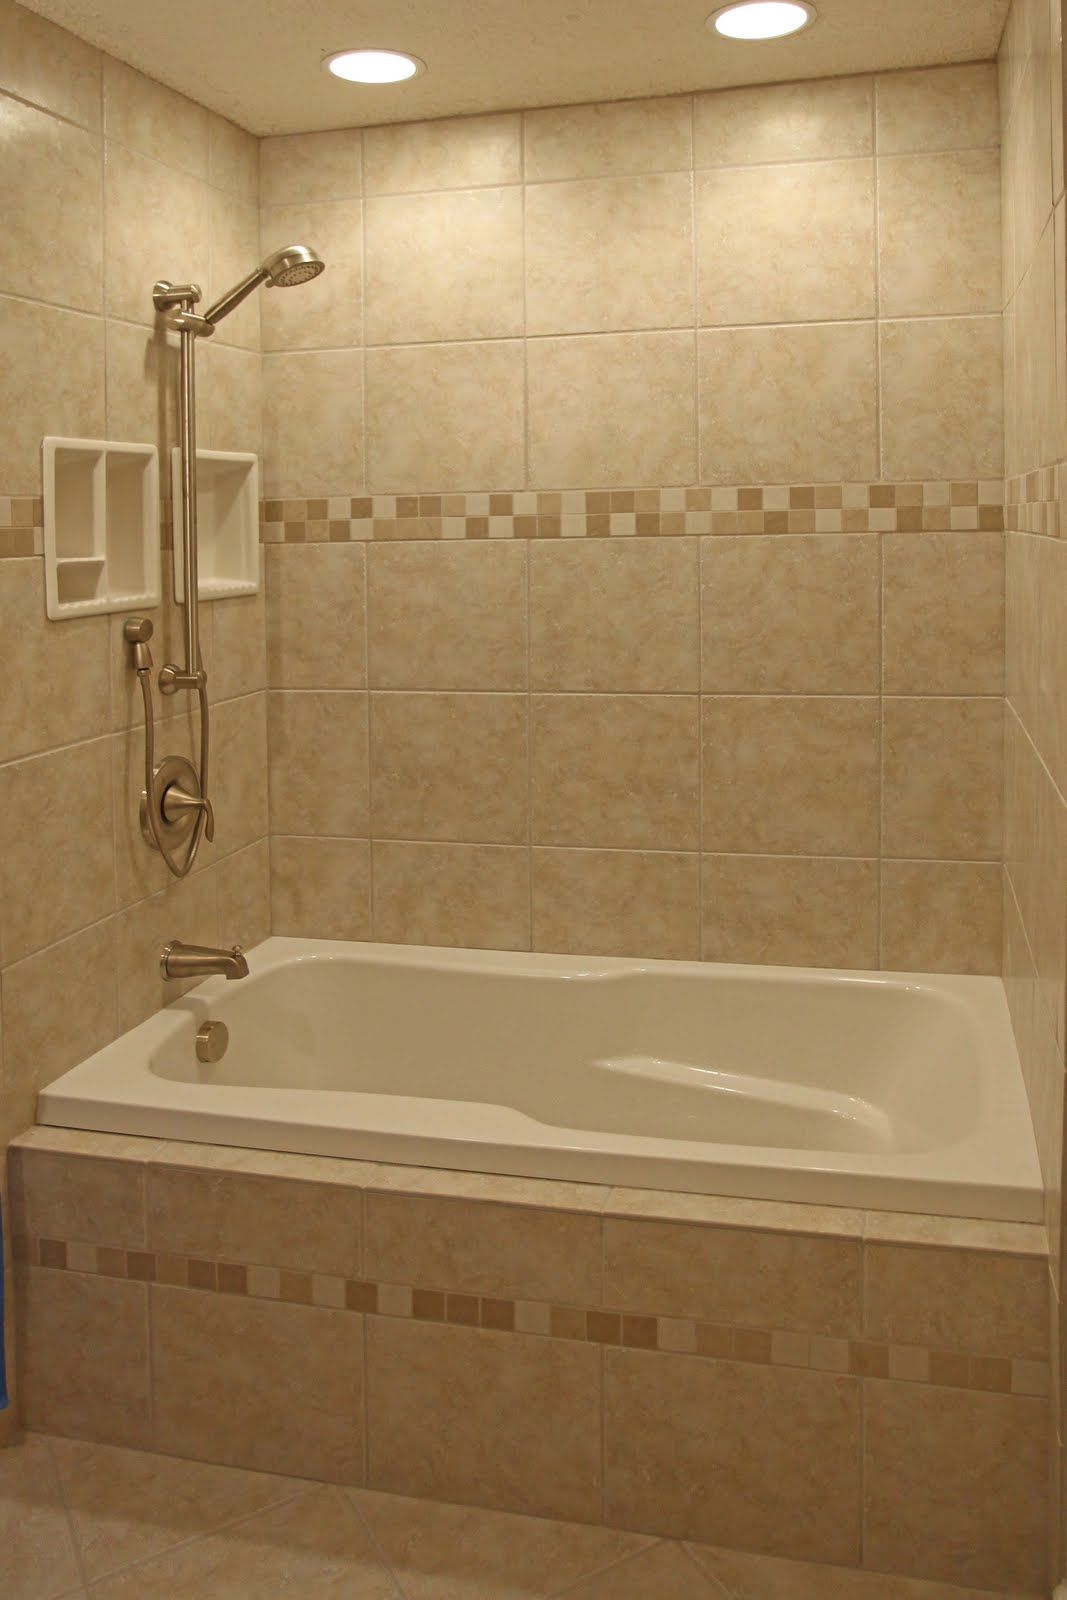 Bathroom Tiles And Designs shower and bath remodel | bathroom shower design ideas » ceramic